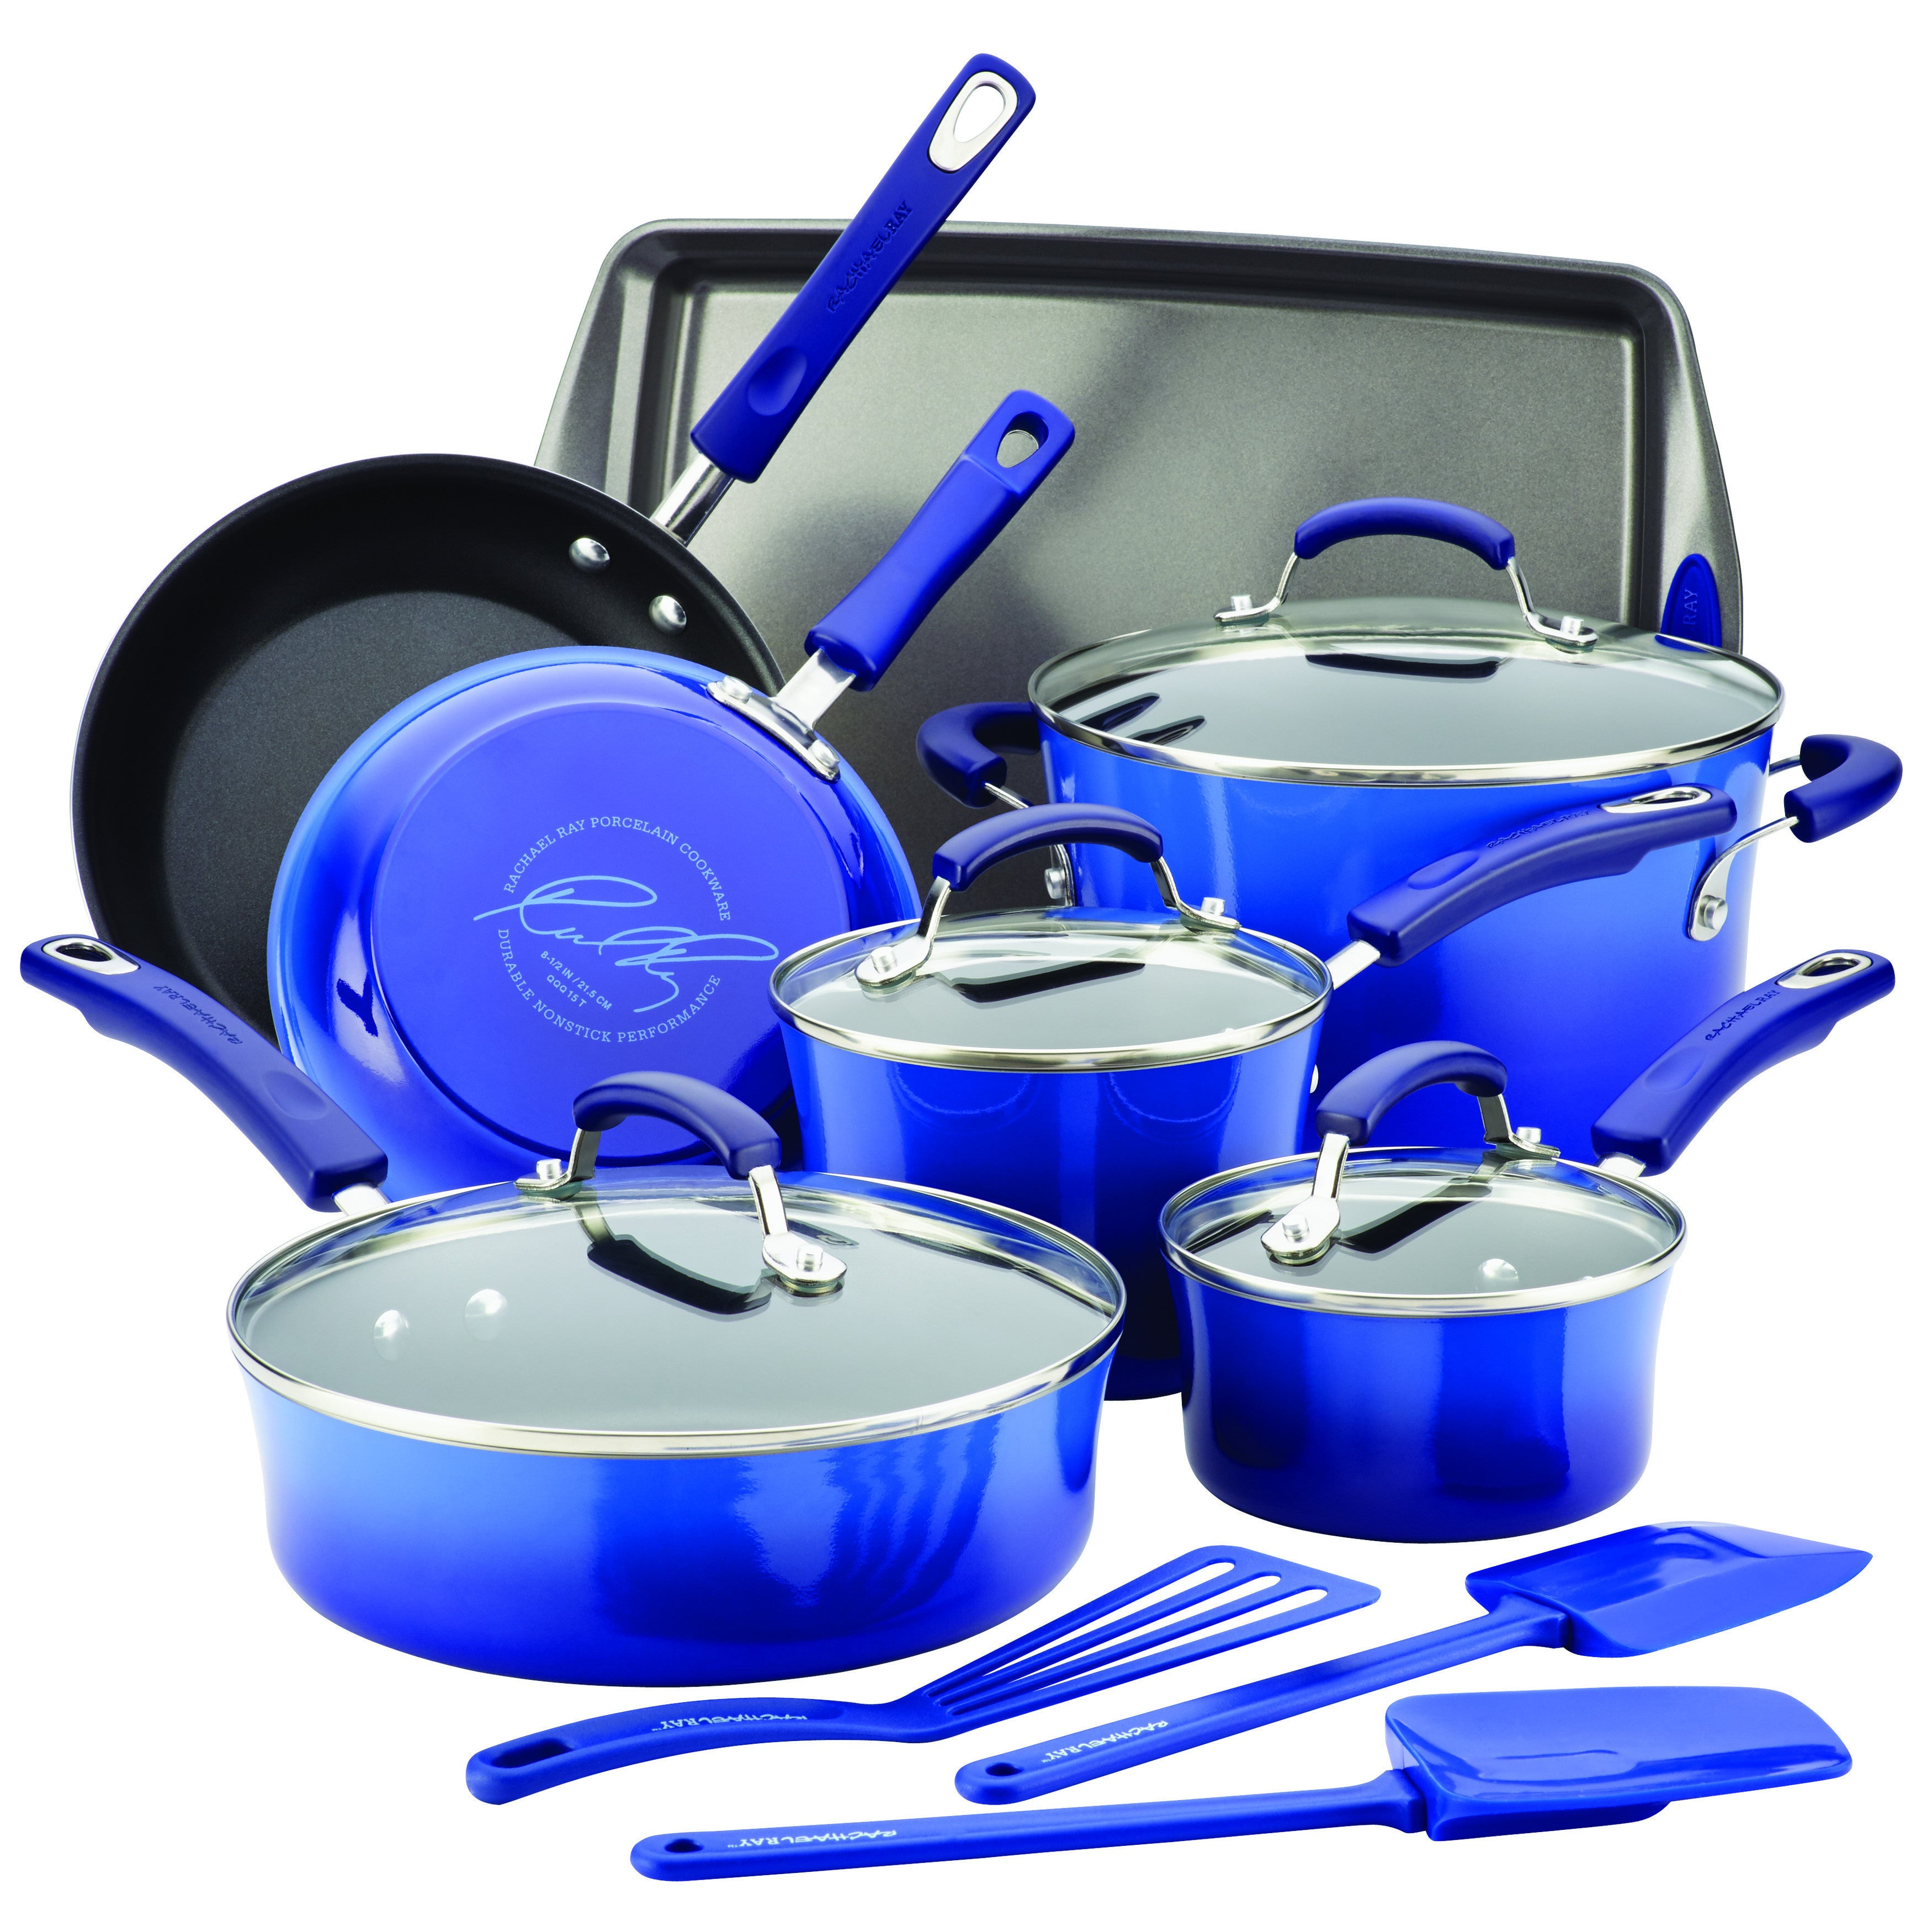 Rachael Ray Cookware 14-Piece Set Hard Enamel Nonstick